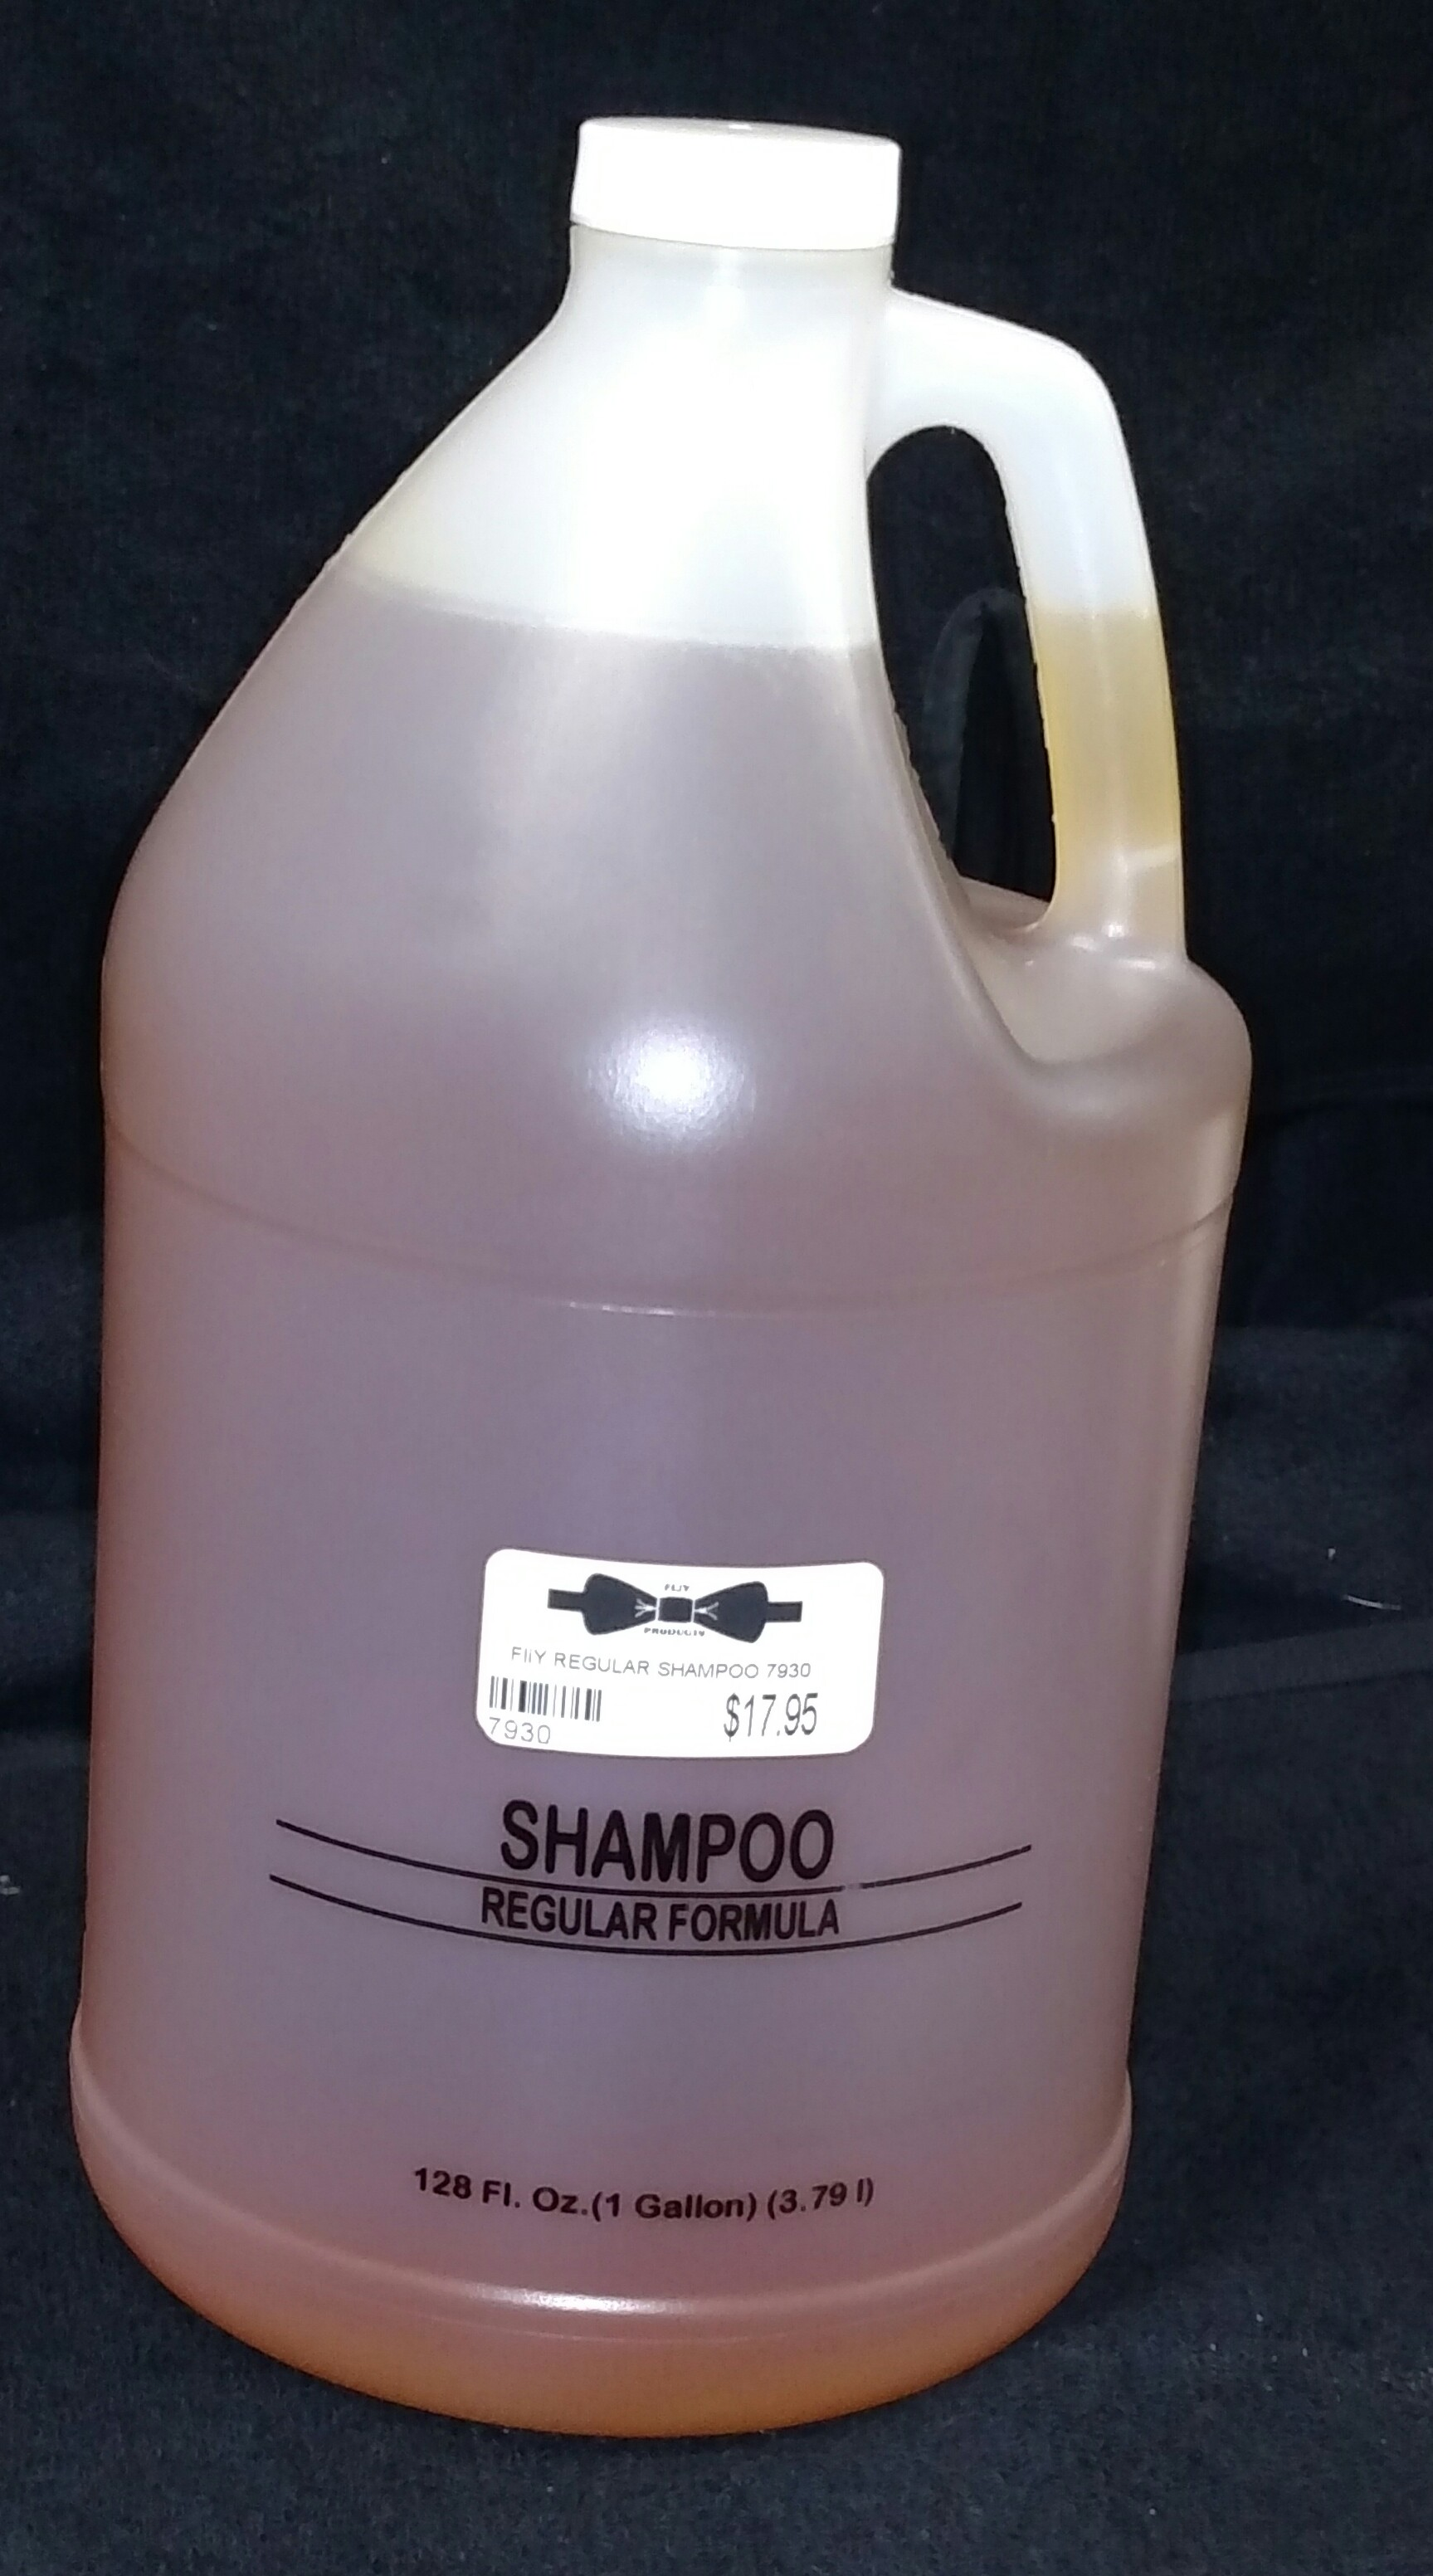 FLiY Products Regular Animal Shampoo #7930